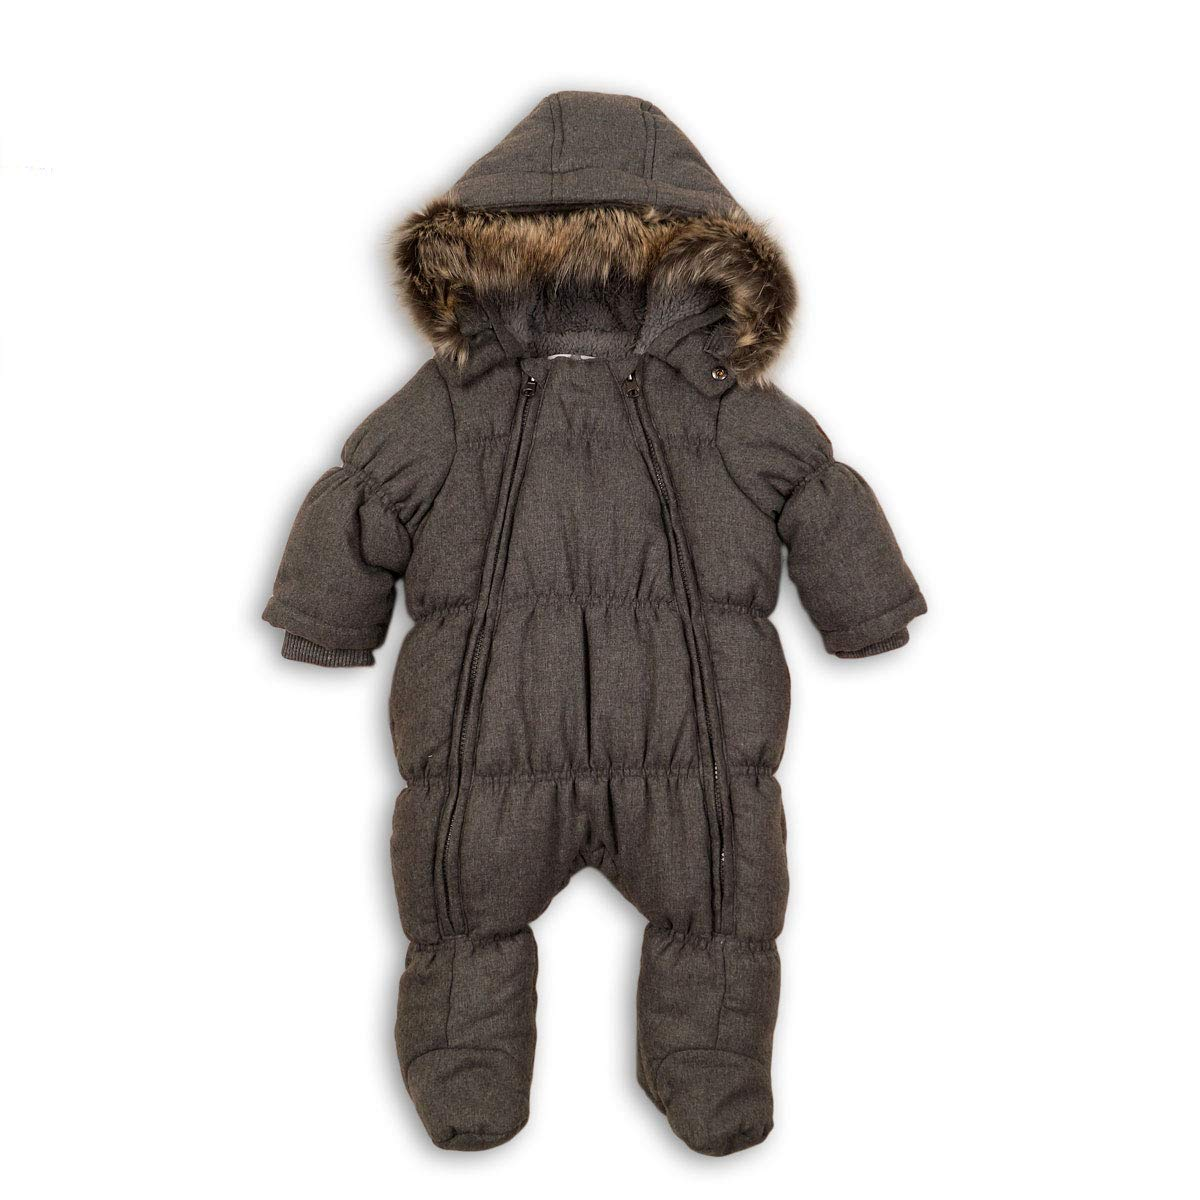 Baby Boys Chambray Effect Grey Winter Snowsuit Pramsuit Jacket 0-12 Months Babaluno